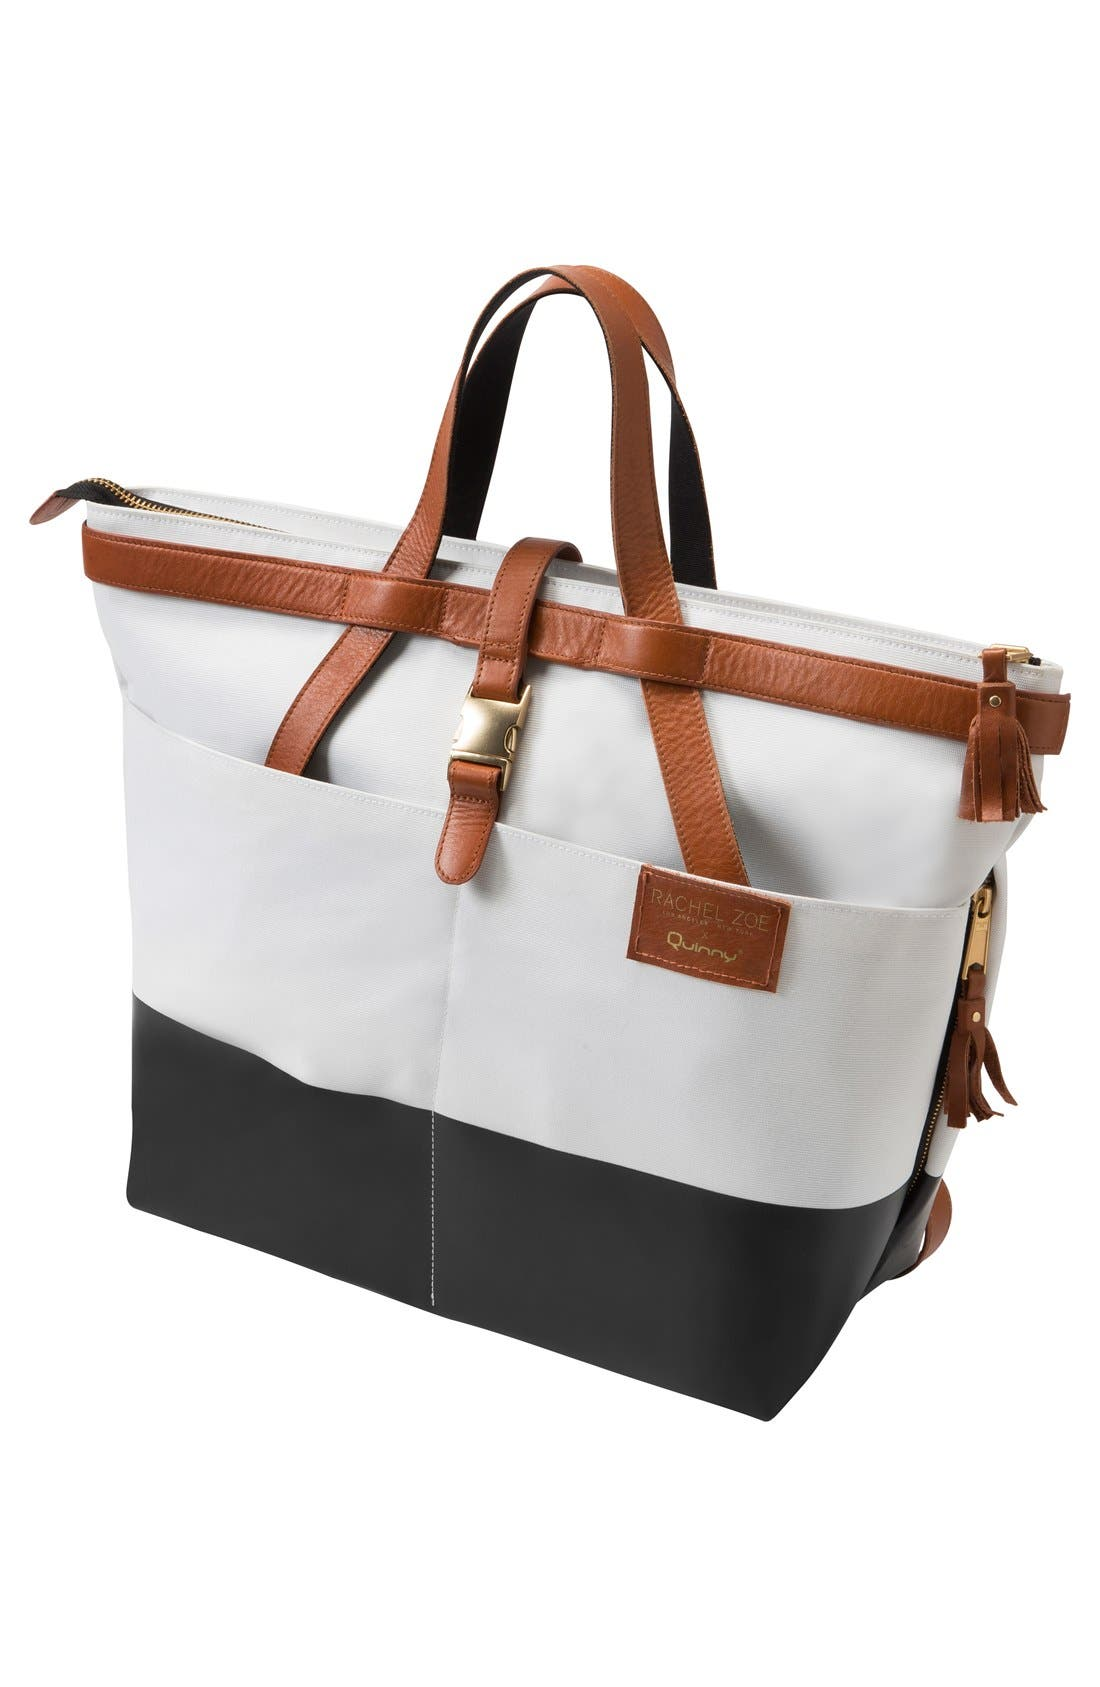 Main Image - Quinny x Rachel Zoe 'Jet Set' Canvas Diaper Bag